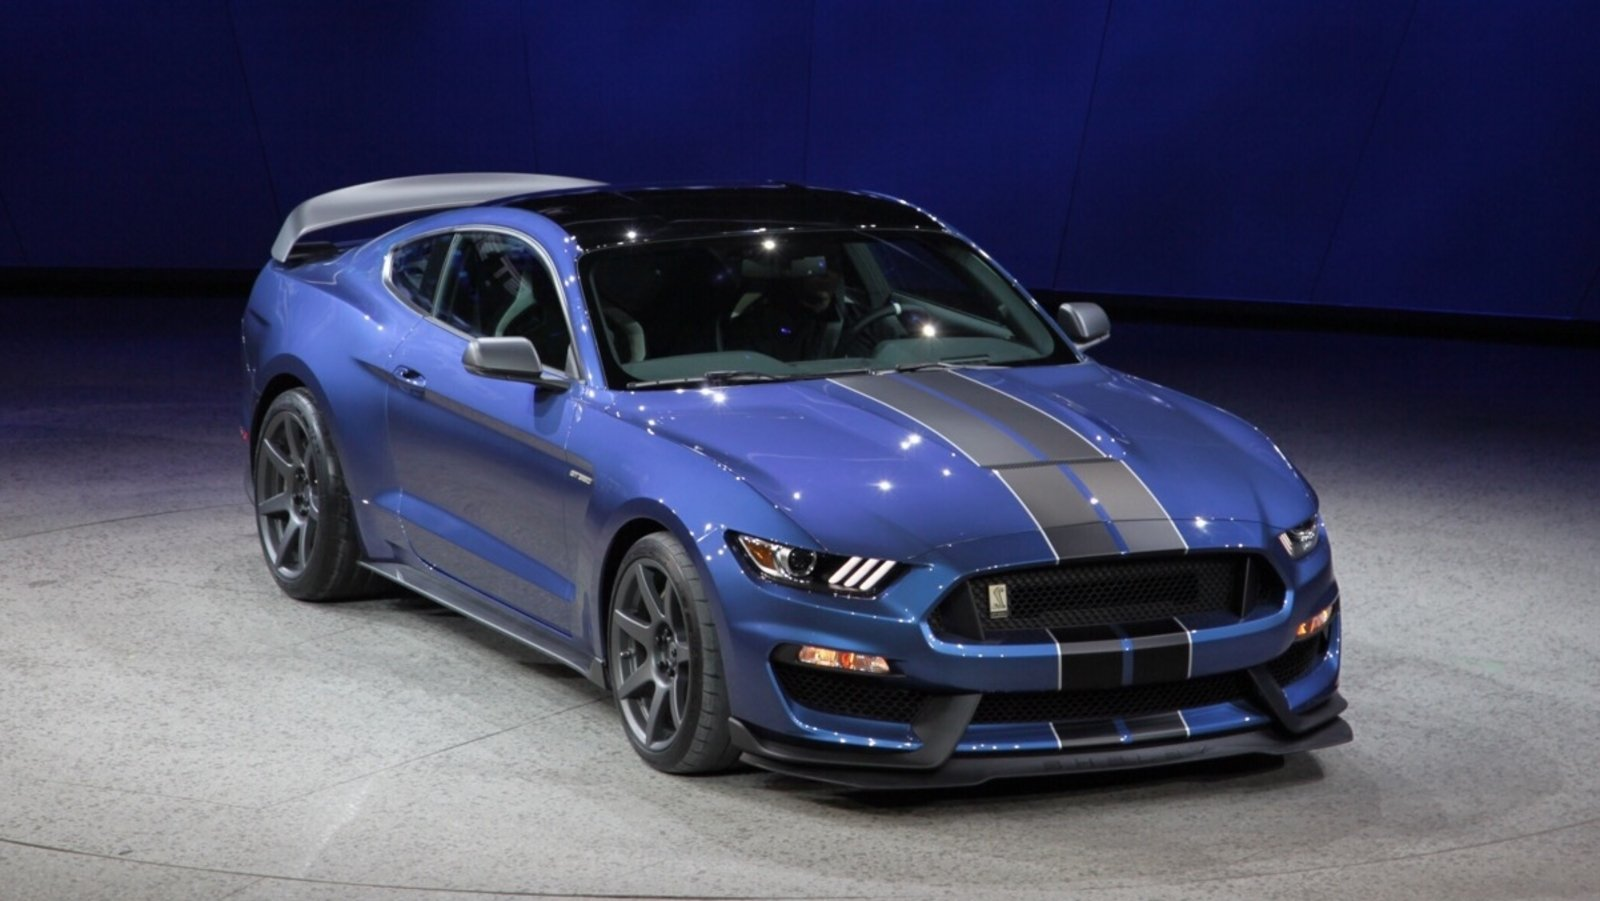 shelby gt350 and gt350r order guide leaked news top speed. Black Bedroom Furniture Sets. Home Design Ideas